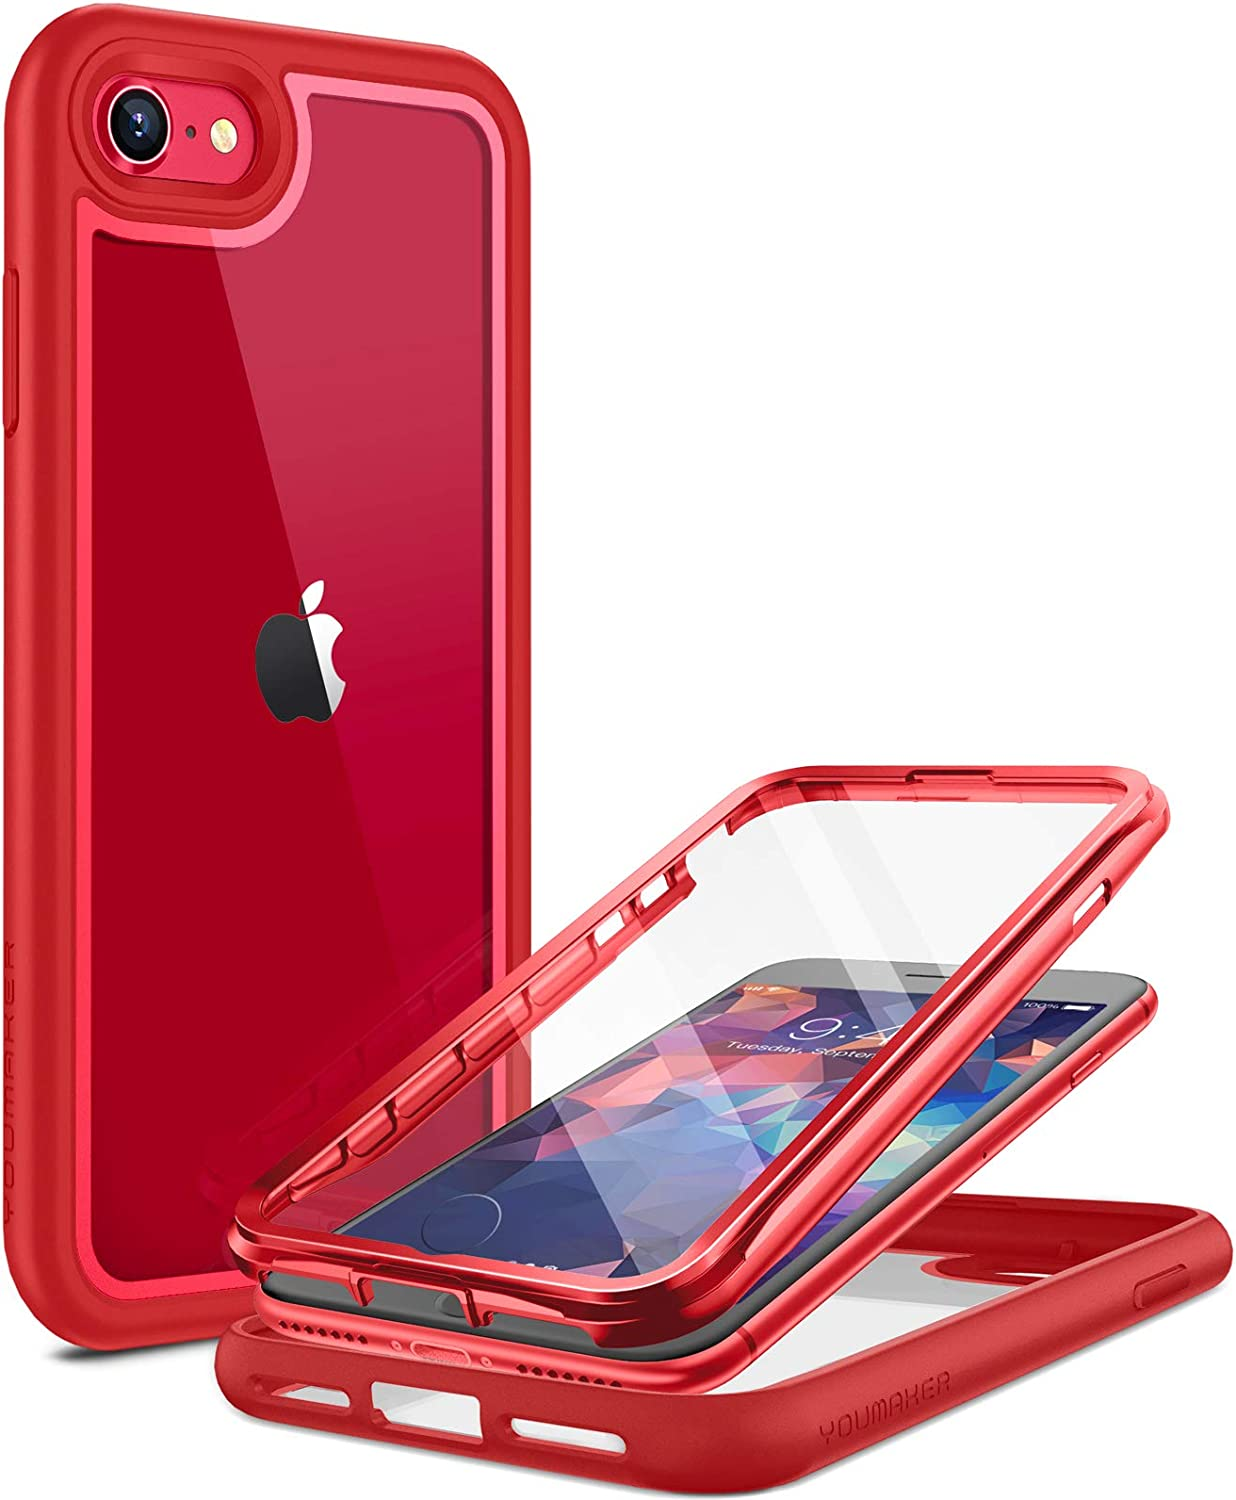 YOUMAKER Aegis Designed for iPhone SE 2020 Case/iPhone 7 Case/iPhone 8 Case, Full-Body with Built-in Screen Protector Rugged Clear Case for iPhone SE 2020/7/8 4.7 Inch-Red